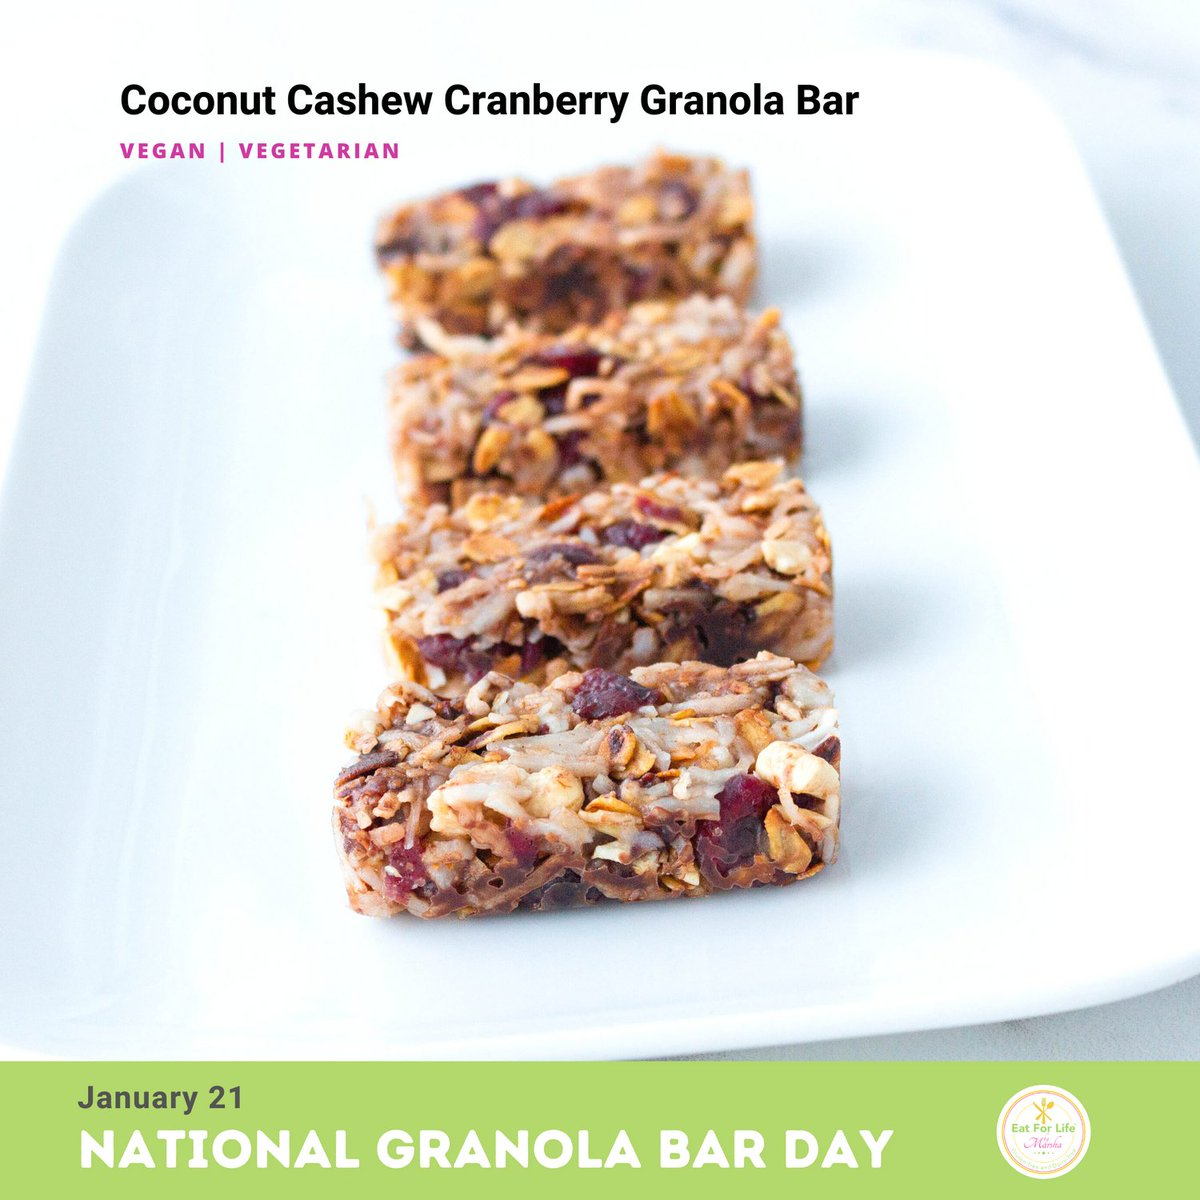 Your Granola Bar is ready and I named it #coconut #cashew #cranberry #granolabar 😄 just in time for #nationalgranolabarday and forgot to meniton #chocolate too. LOL  Tomorrow, I will post step-by-step recipe instructions.   #nutritious #healthy #delicious #glutenfree #dairyfree